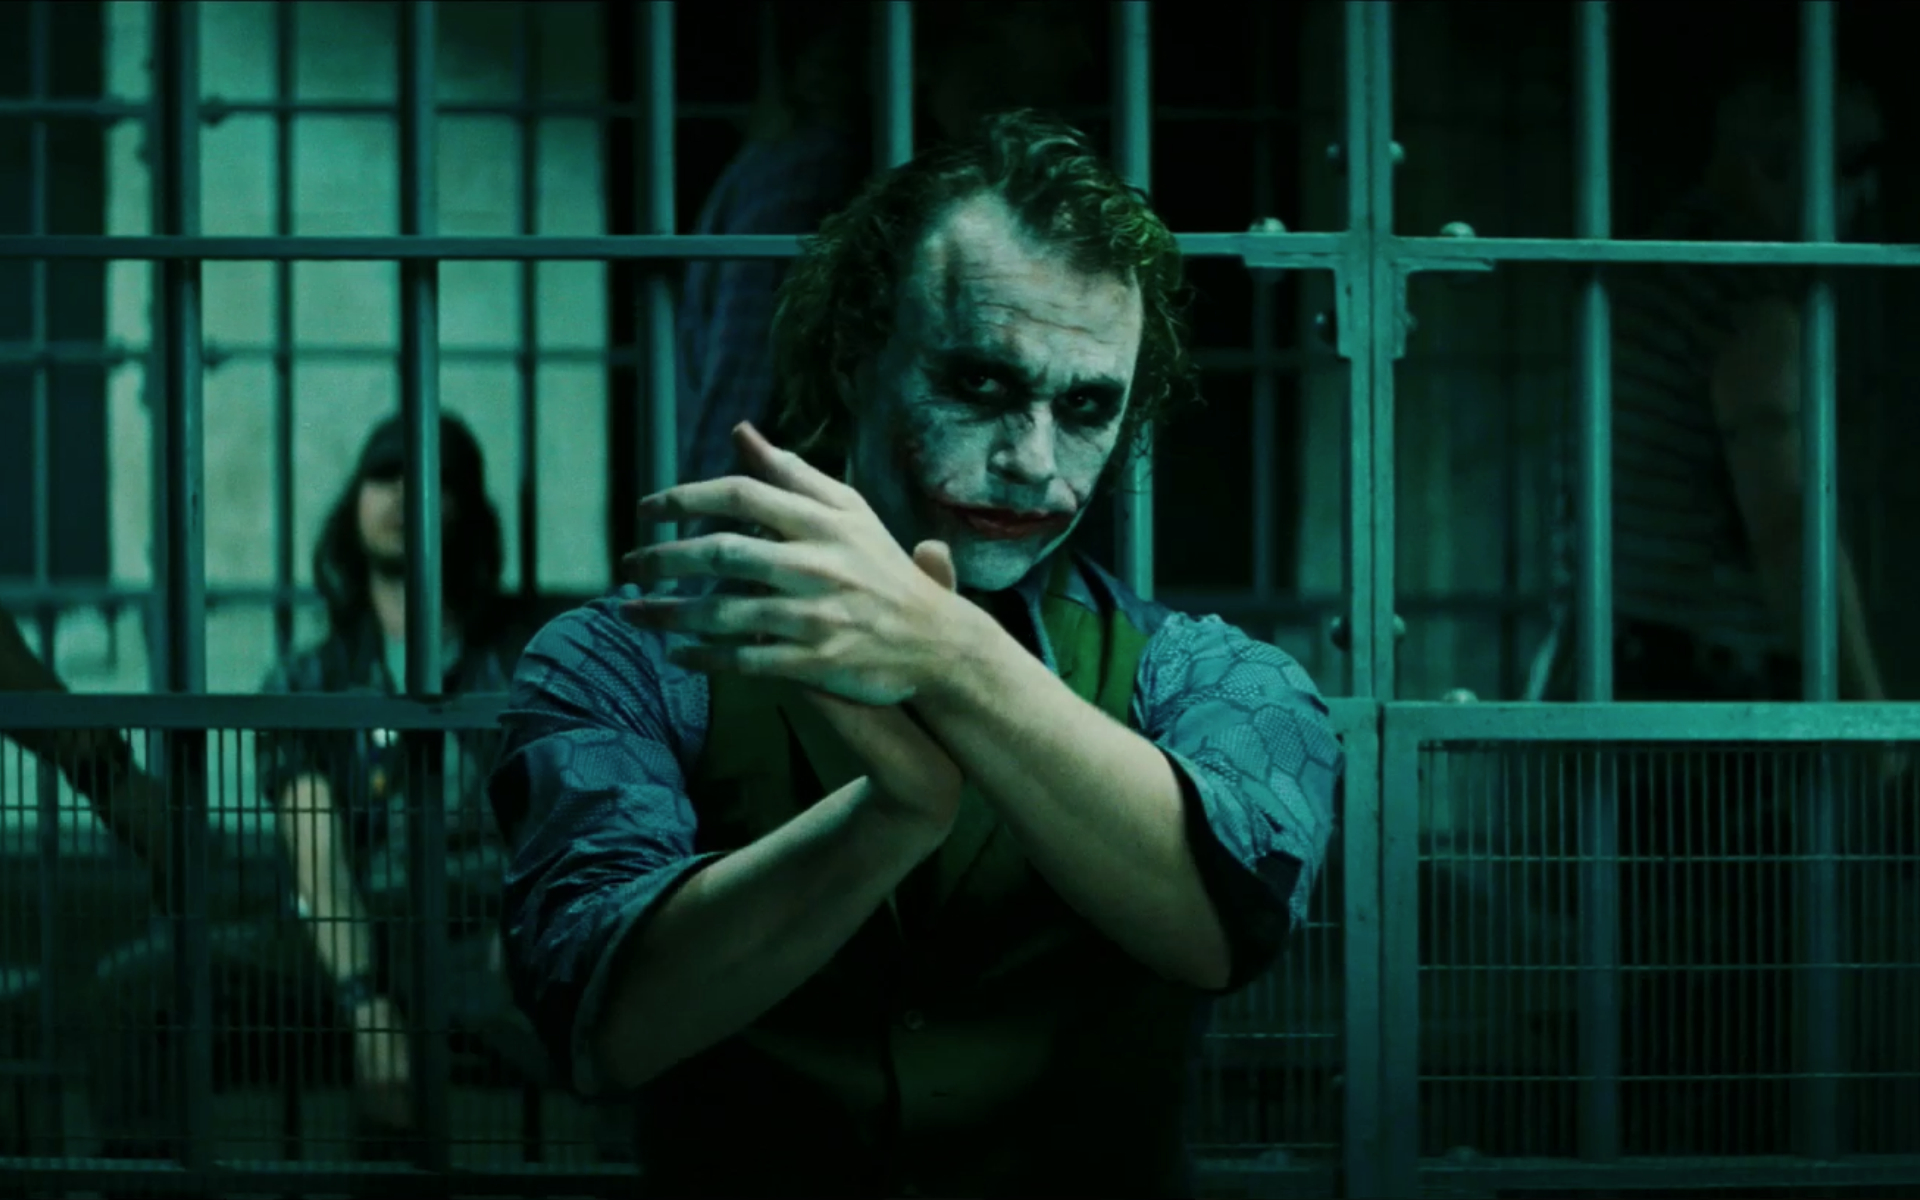 Joker Dark Knight Wallpaper Images amp Pictures   Becuo 1920x1200